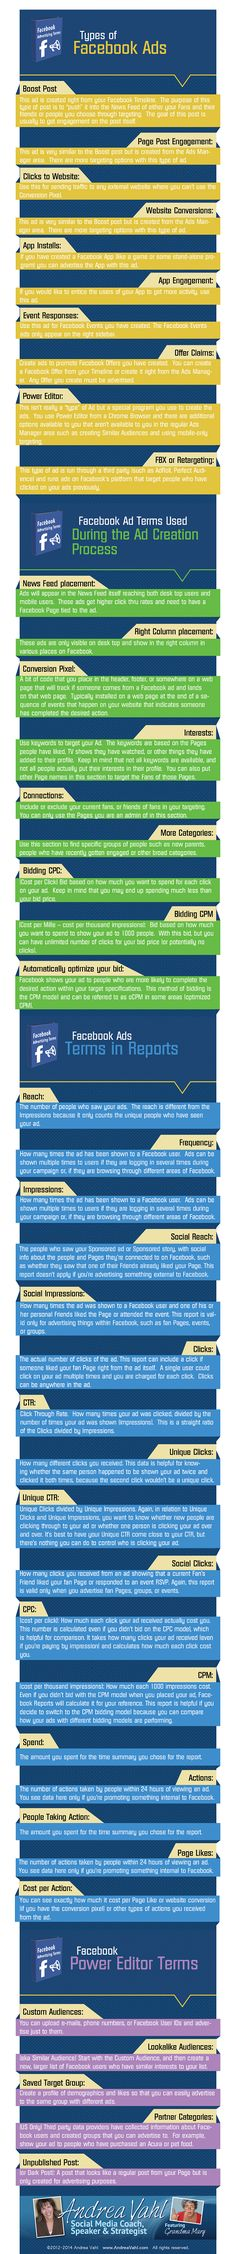 Facebook-Advertising-Terms-Infographic1.png (600×5731)